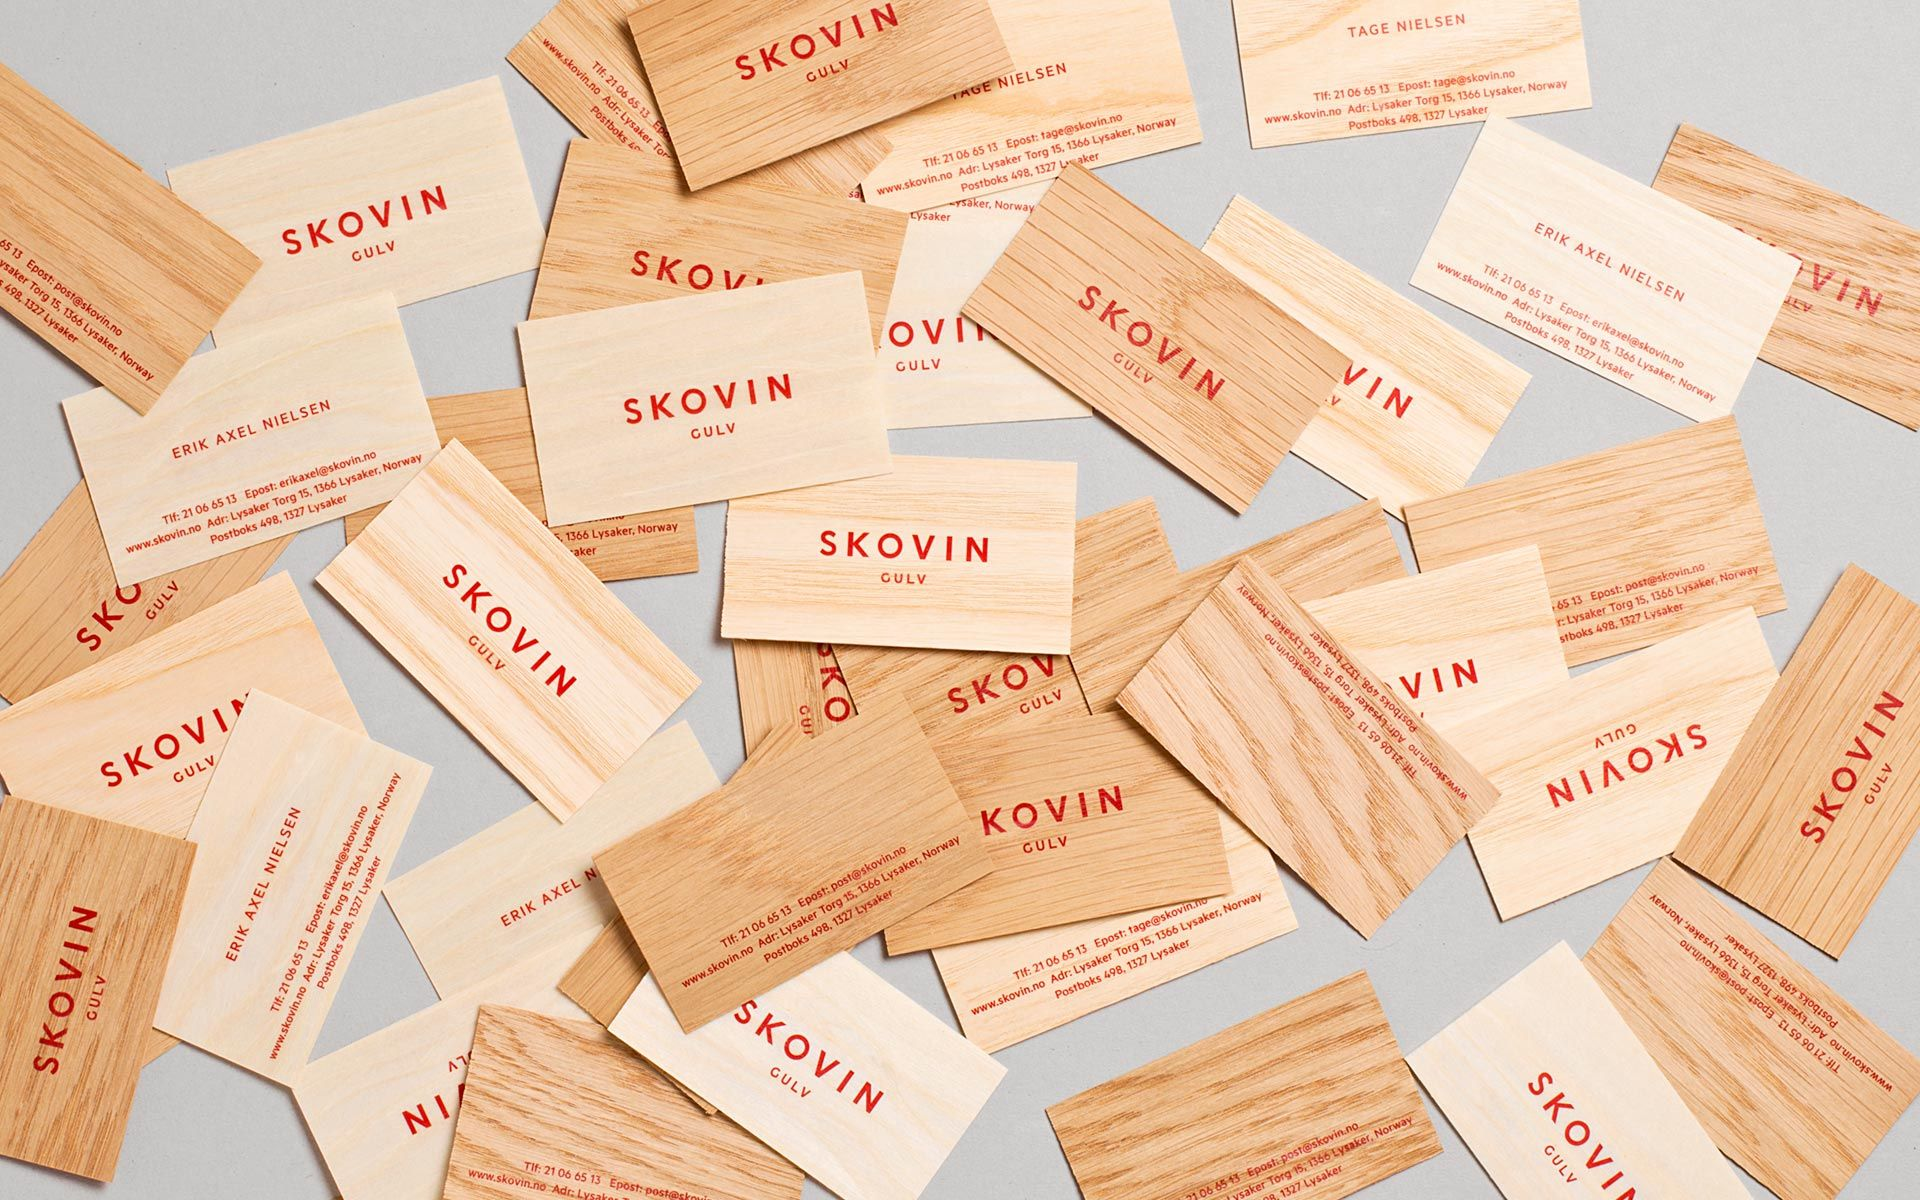 Skovin gulv wood veneer business cards designed by heydays love the skovin gulv wood veneer business cards designed by heydays love the wood so different from the usual reheart